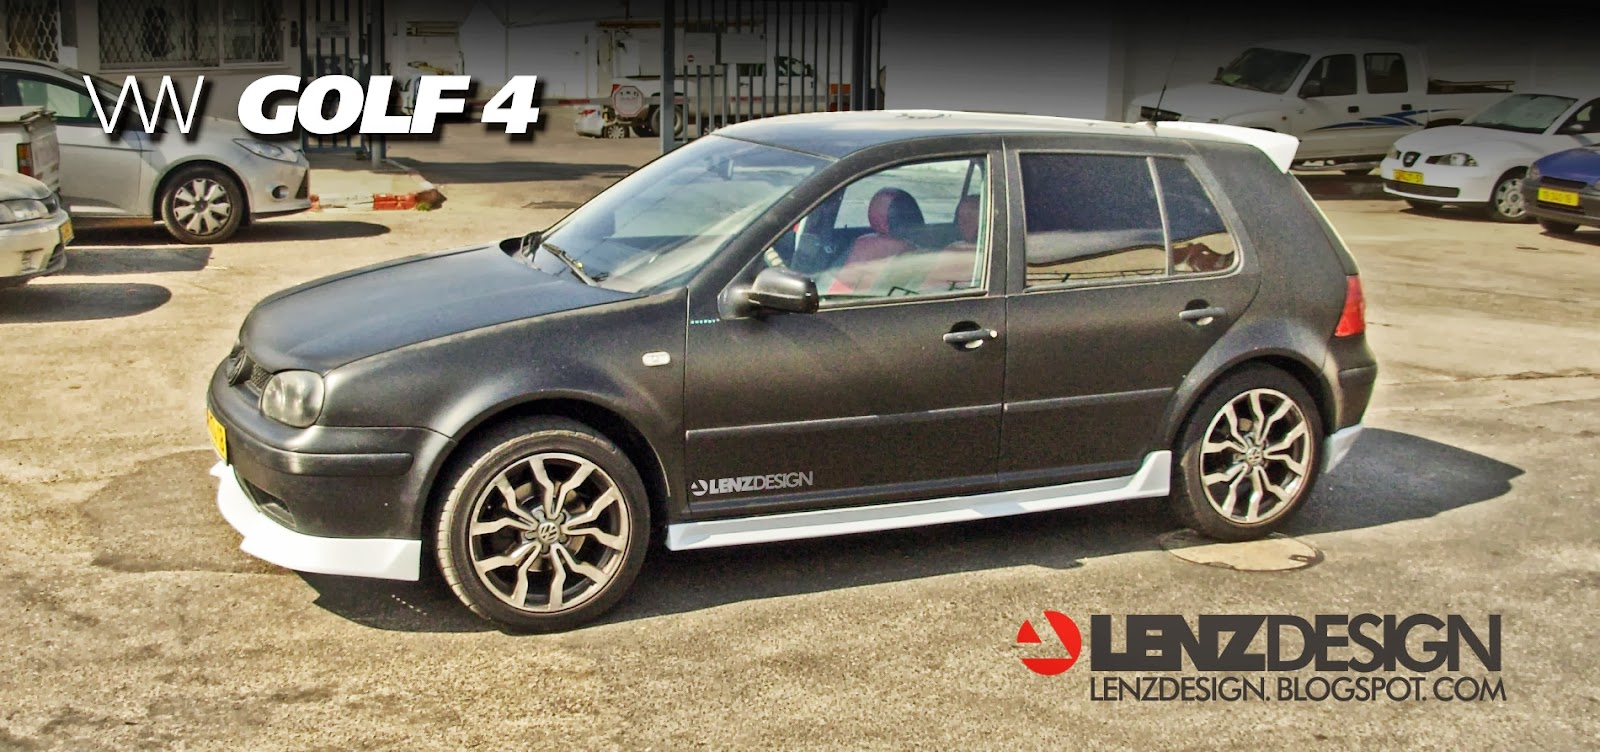 vw golf  tuning lenzdesign auto cars benz